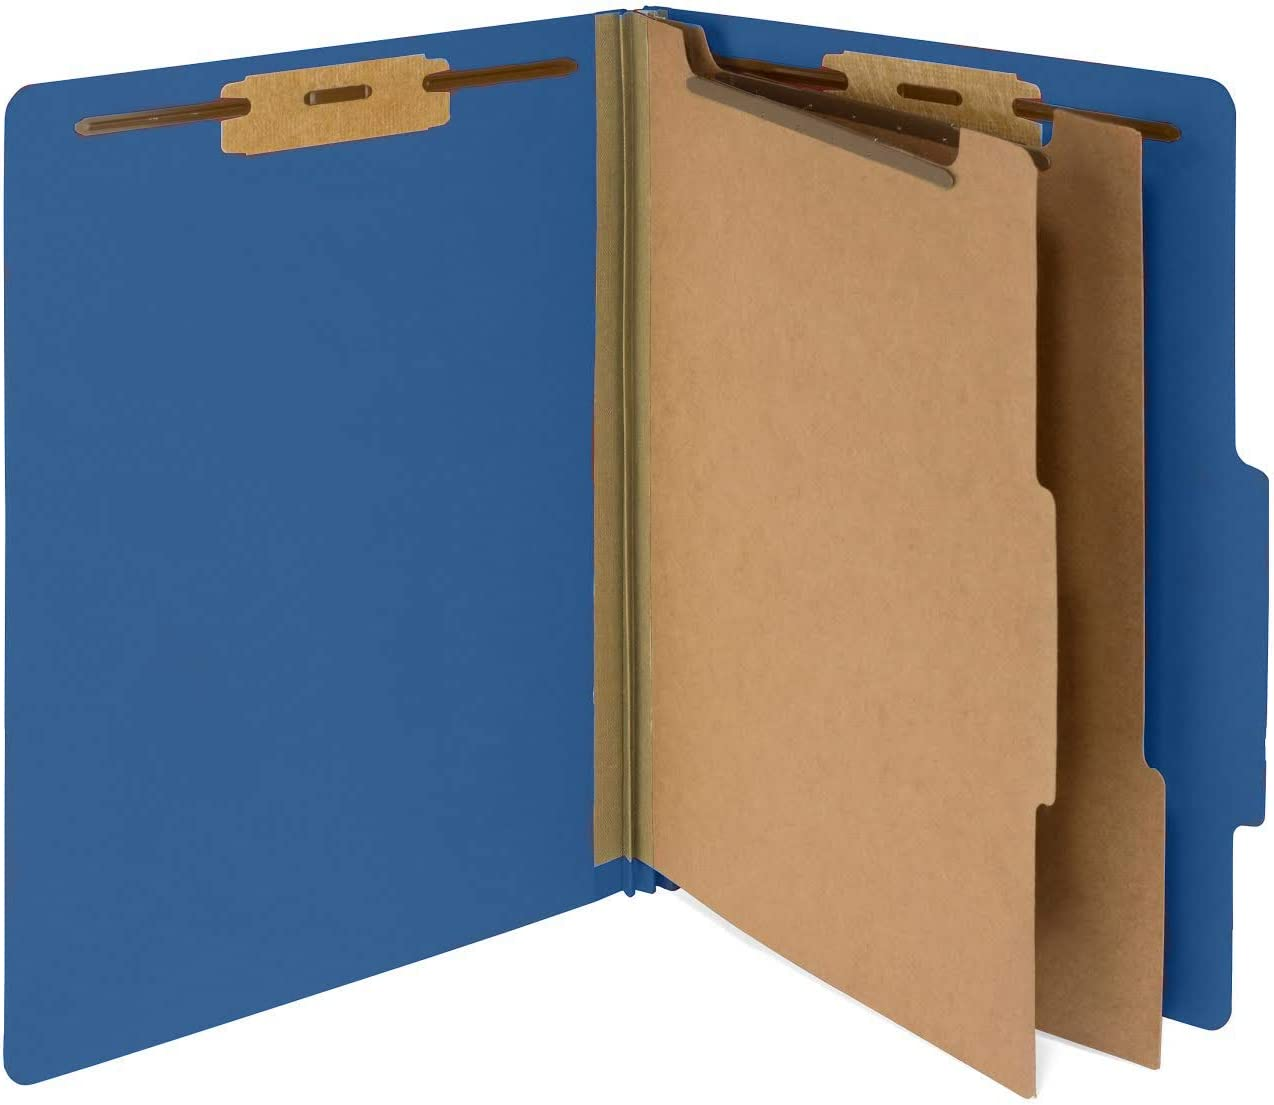 10 Dark Blue Classification Folders - 2 Divider - 2 Inch Tyvek Expansions - Durable 2 Prongs Designed to Organize Standard Medical Files, Law Client Files - Letter Size, Dark Blue, 10 Pack 612Oi6FzLhL